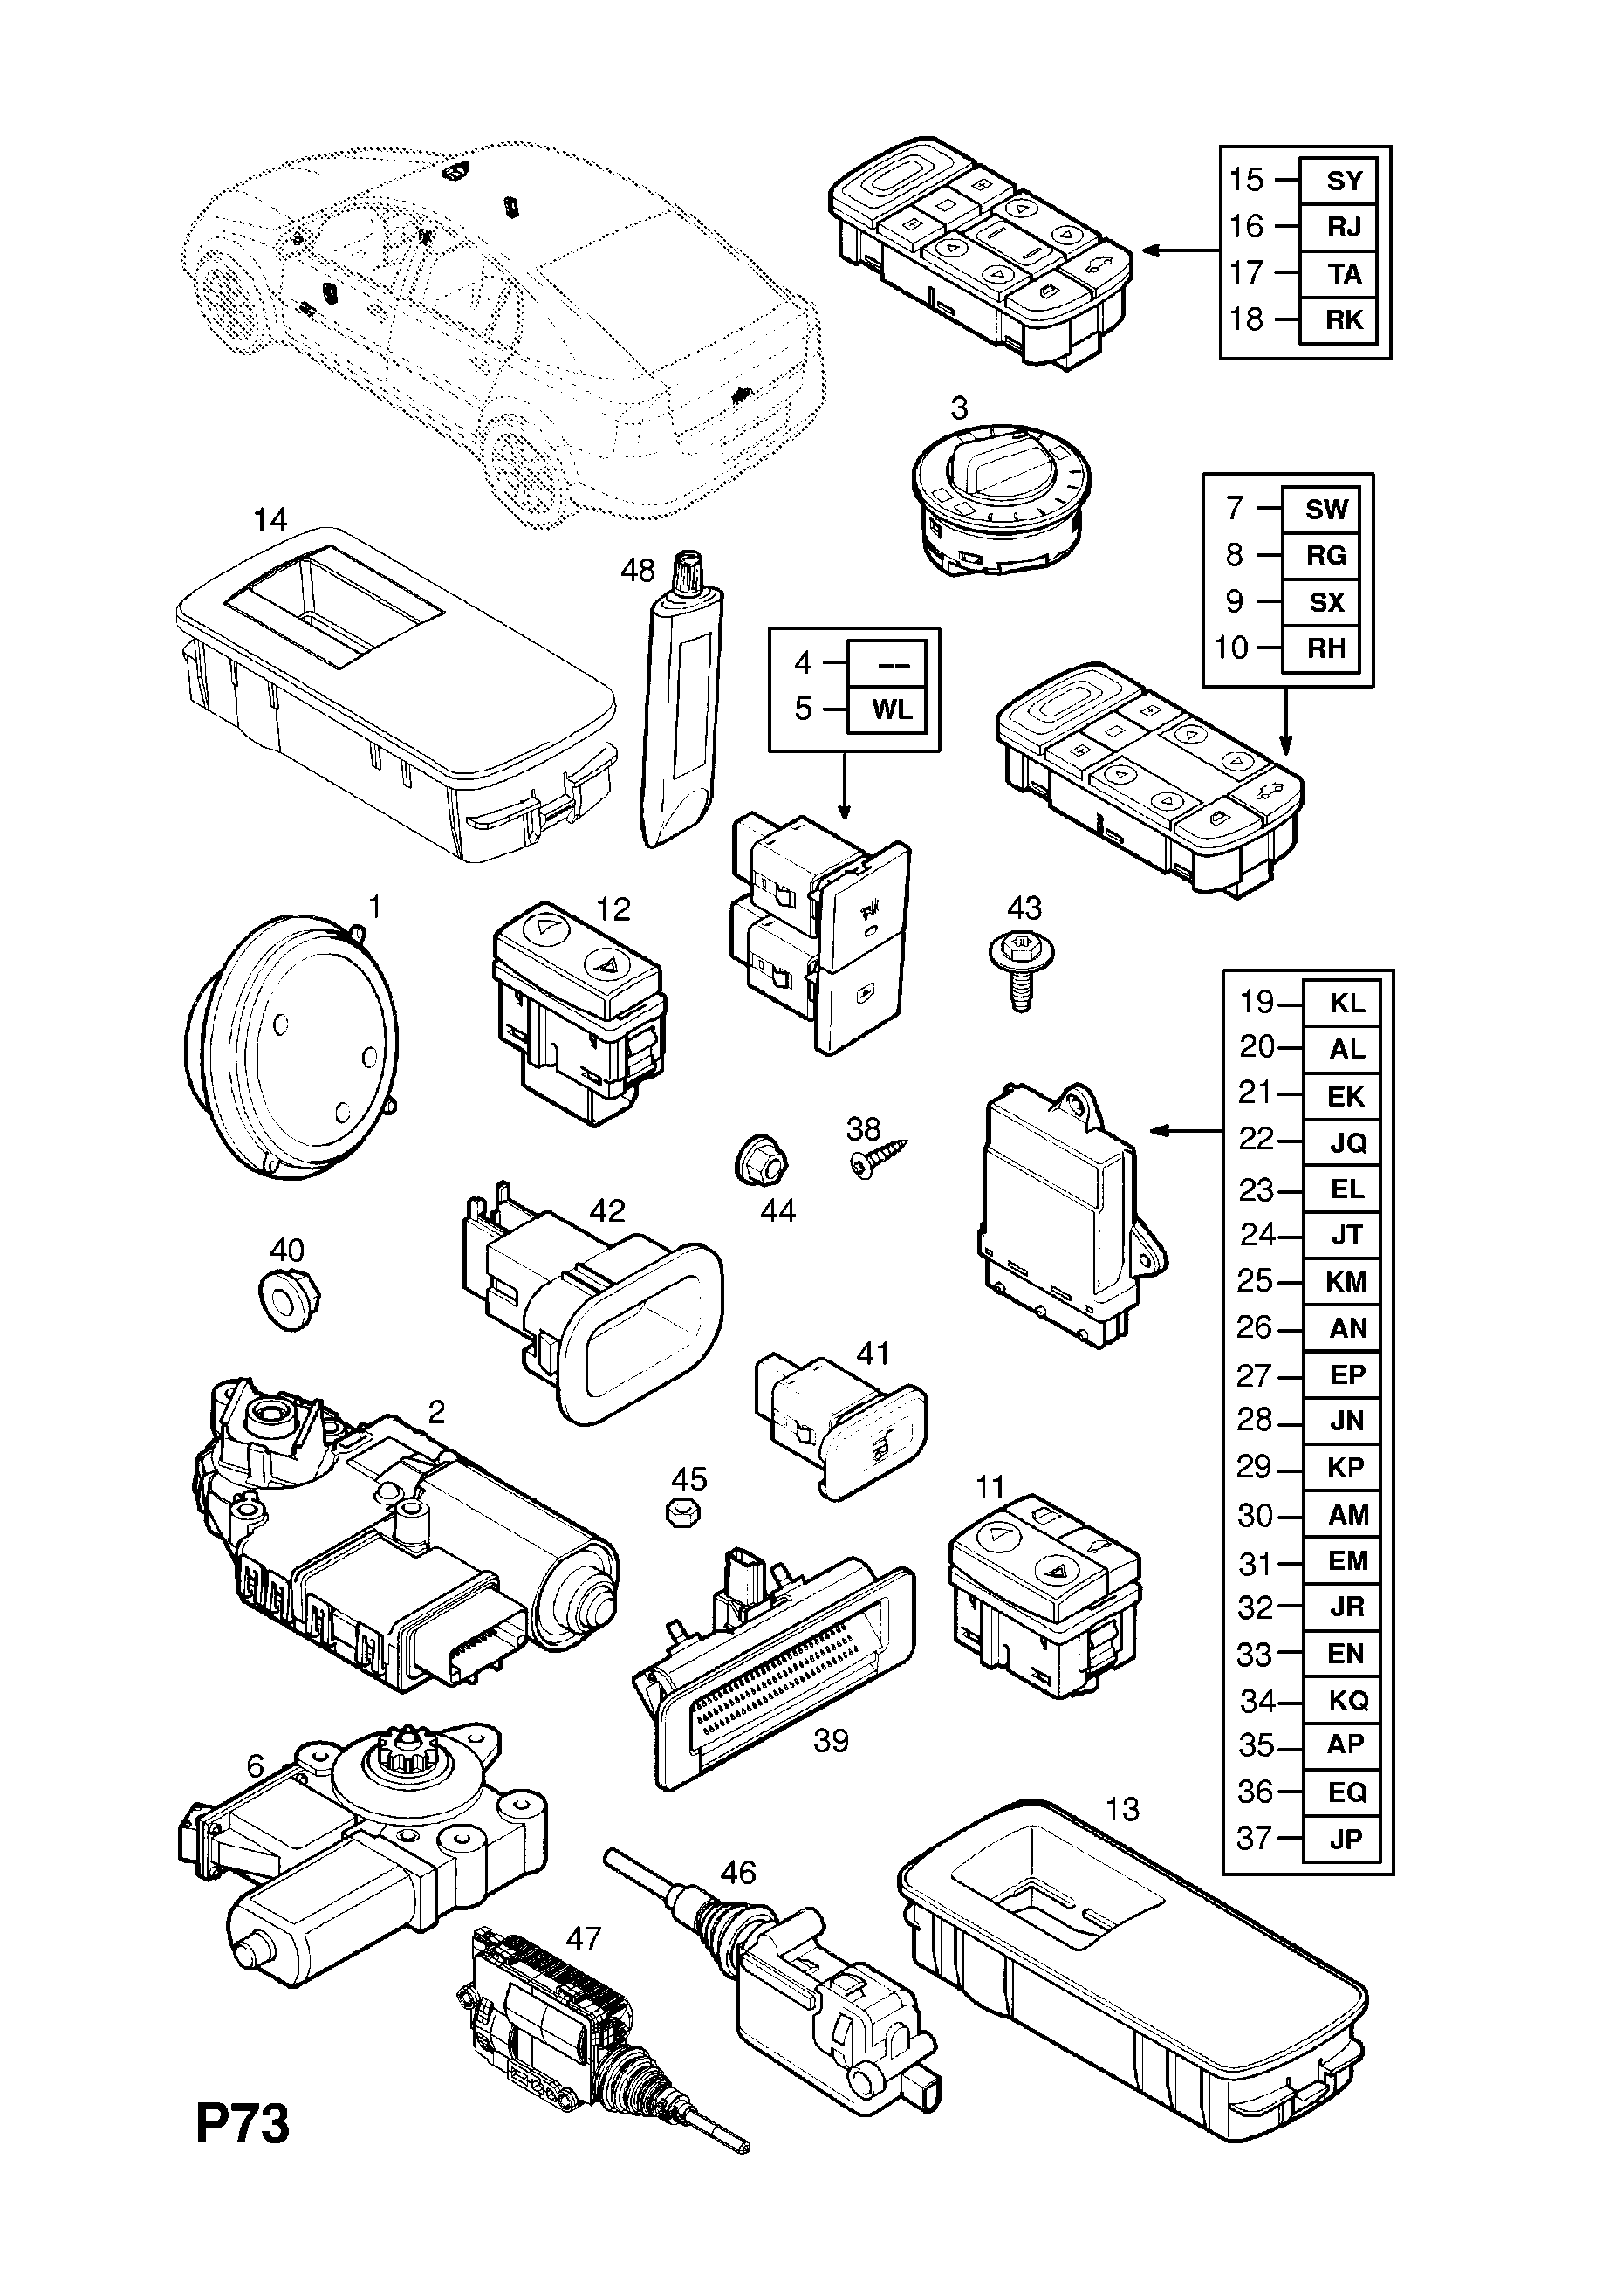 Vectra C W0l0zcf6941052682 P Electrical 13 Body 26used With I Would Like To Know How Get A Diagram List Of Parts